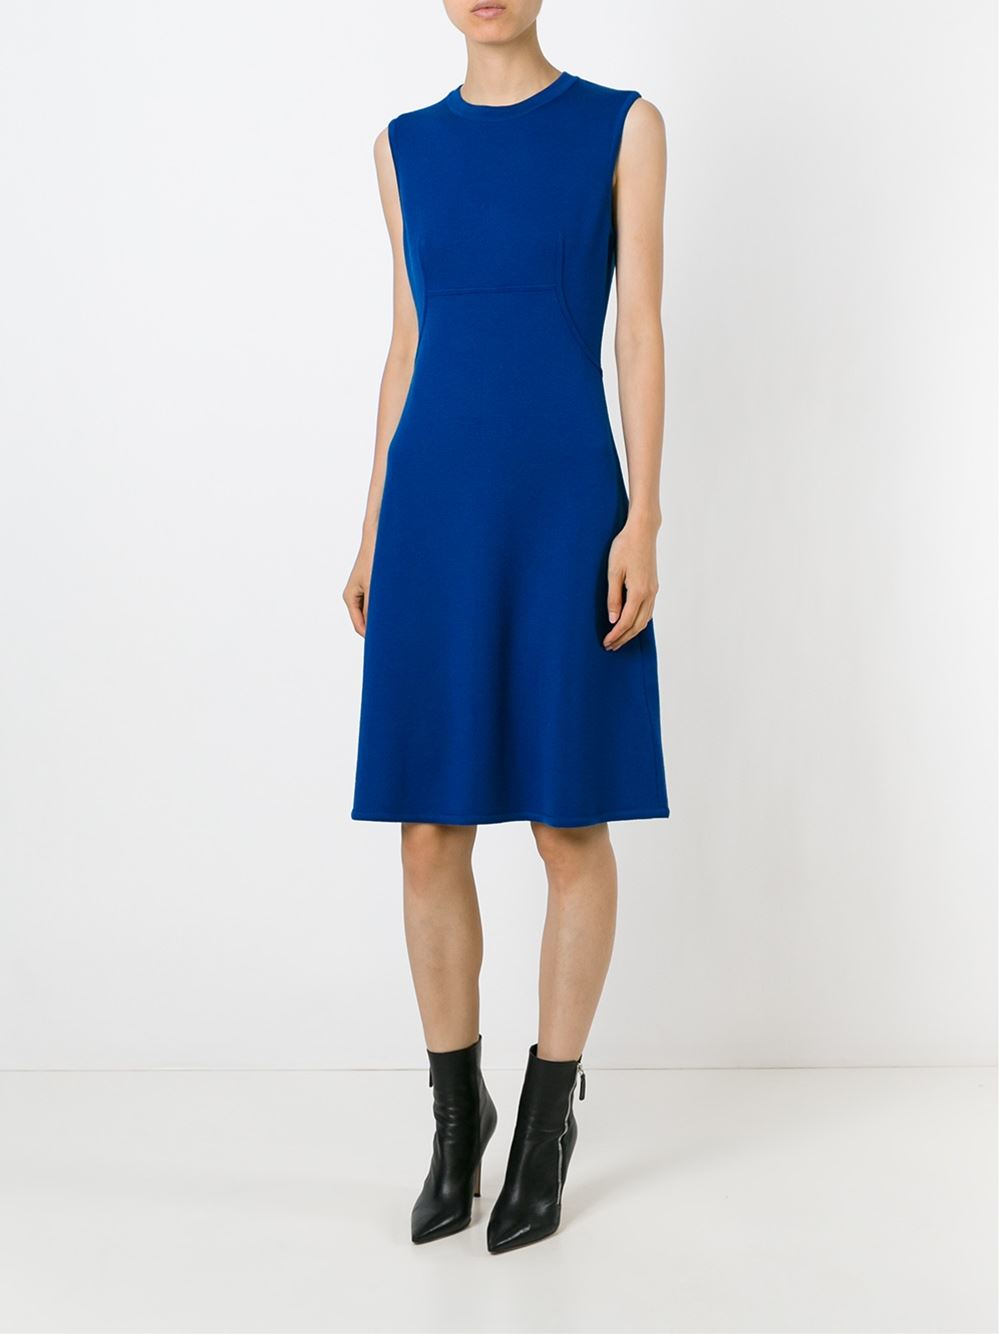 Ermanno Scervino Sleeveless Knit Dress In Blue Lyst